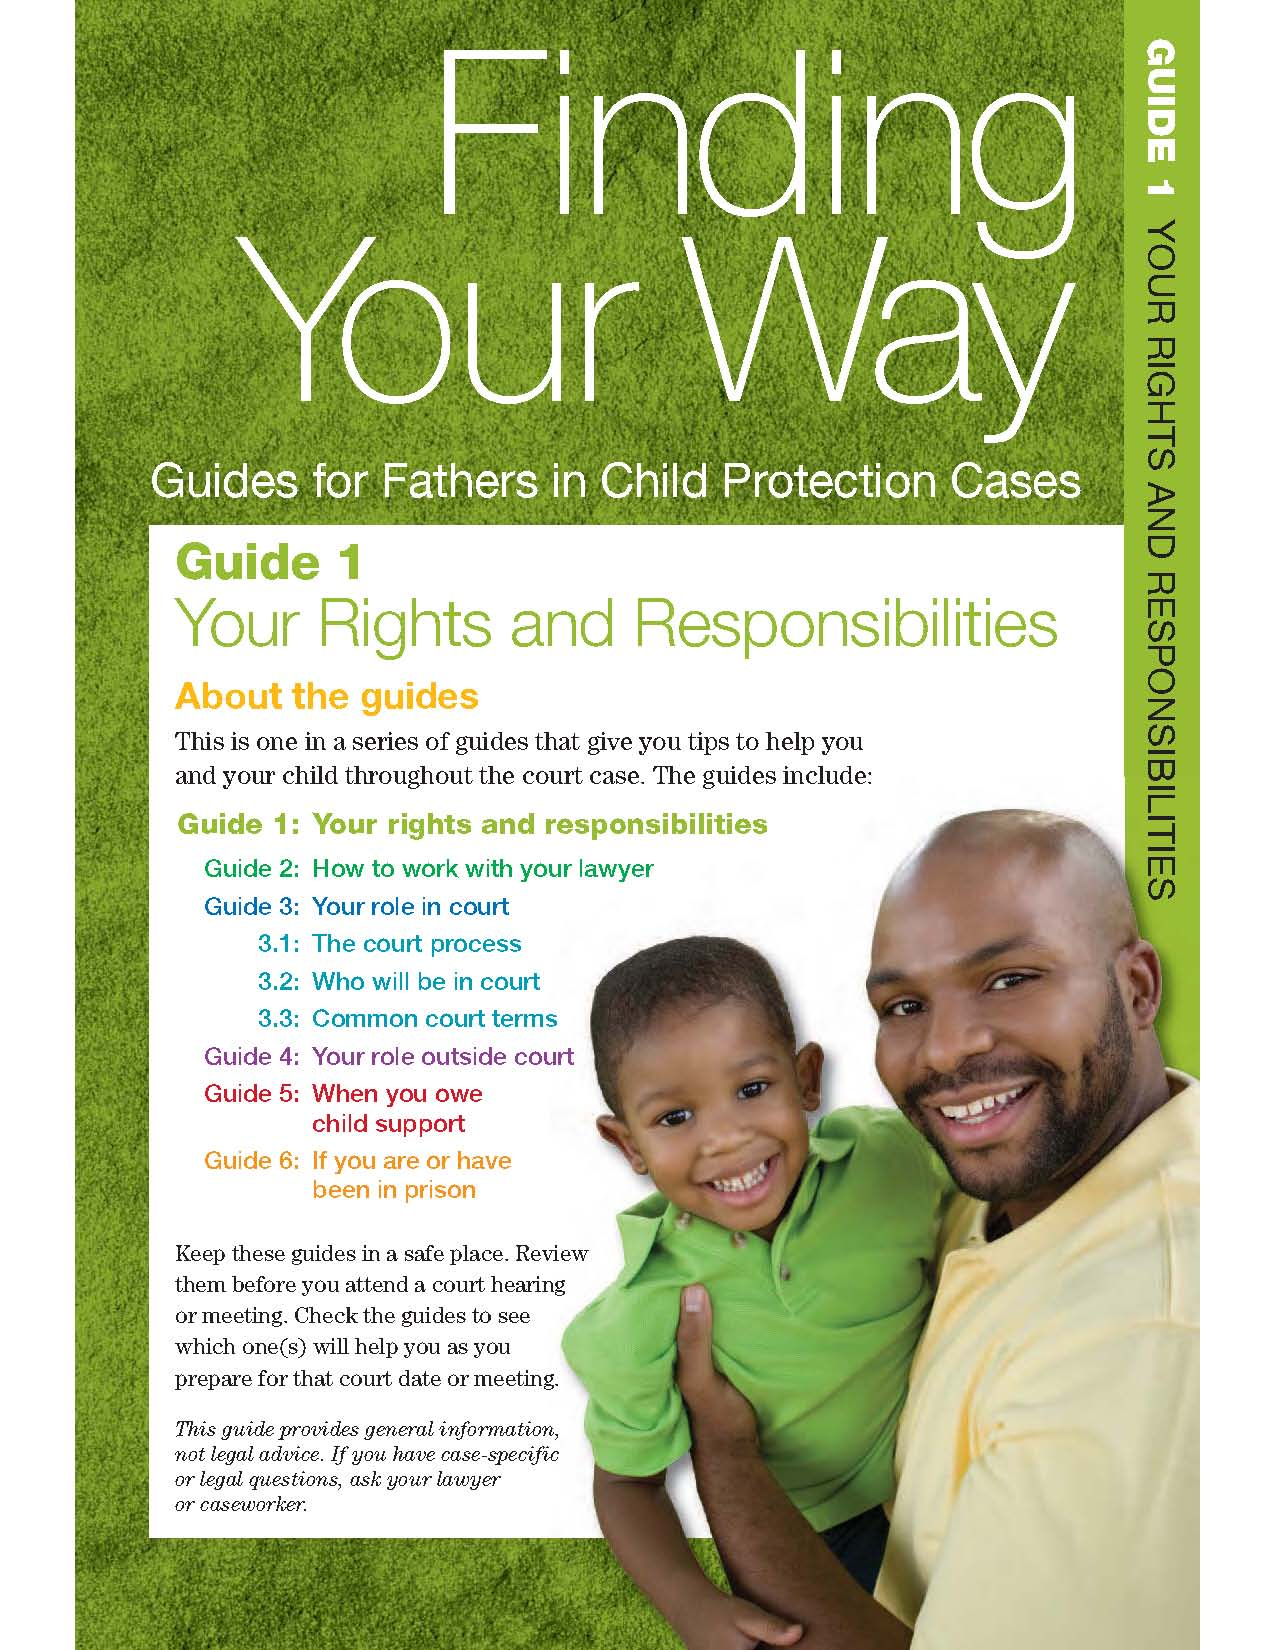 Finding your way: Guide for fathers in child protection cases.